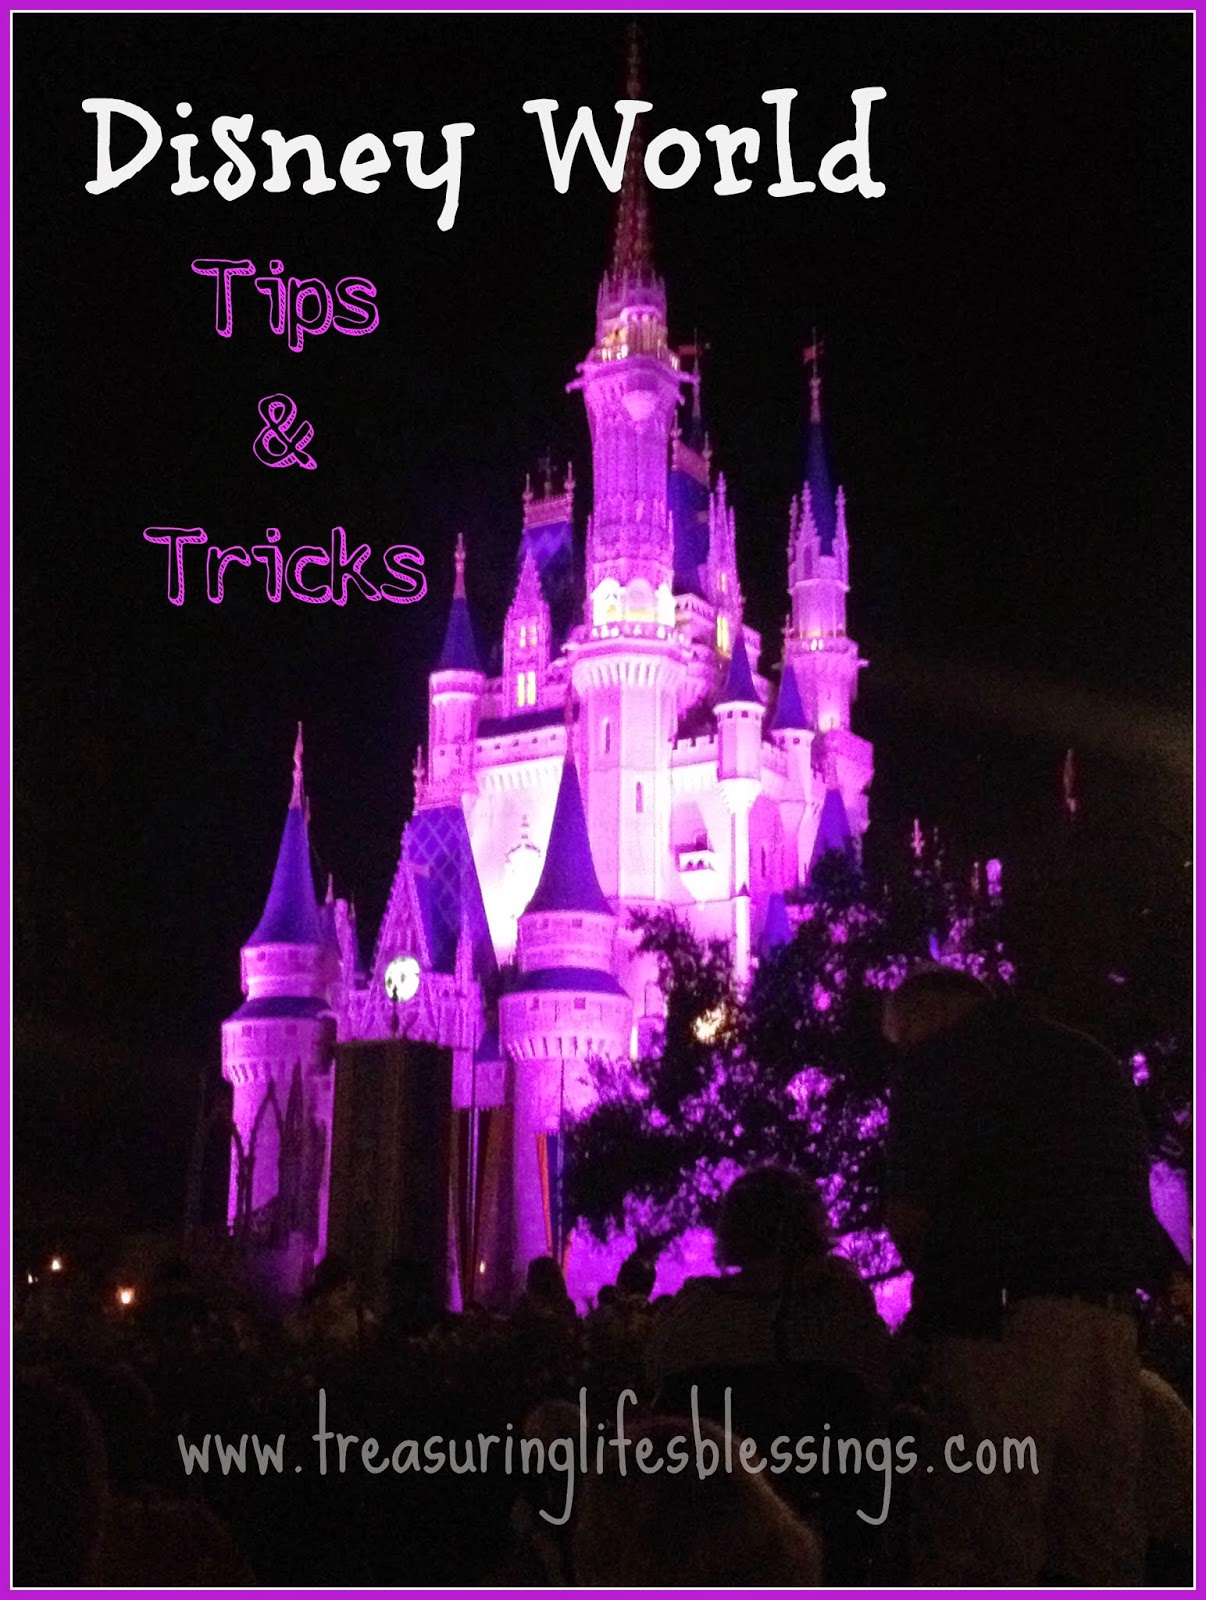 Disney World Tips and Tricks for Inexpensive Trip